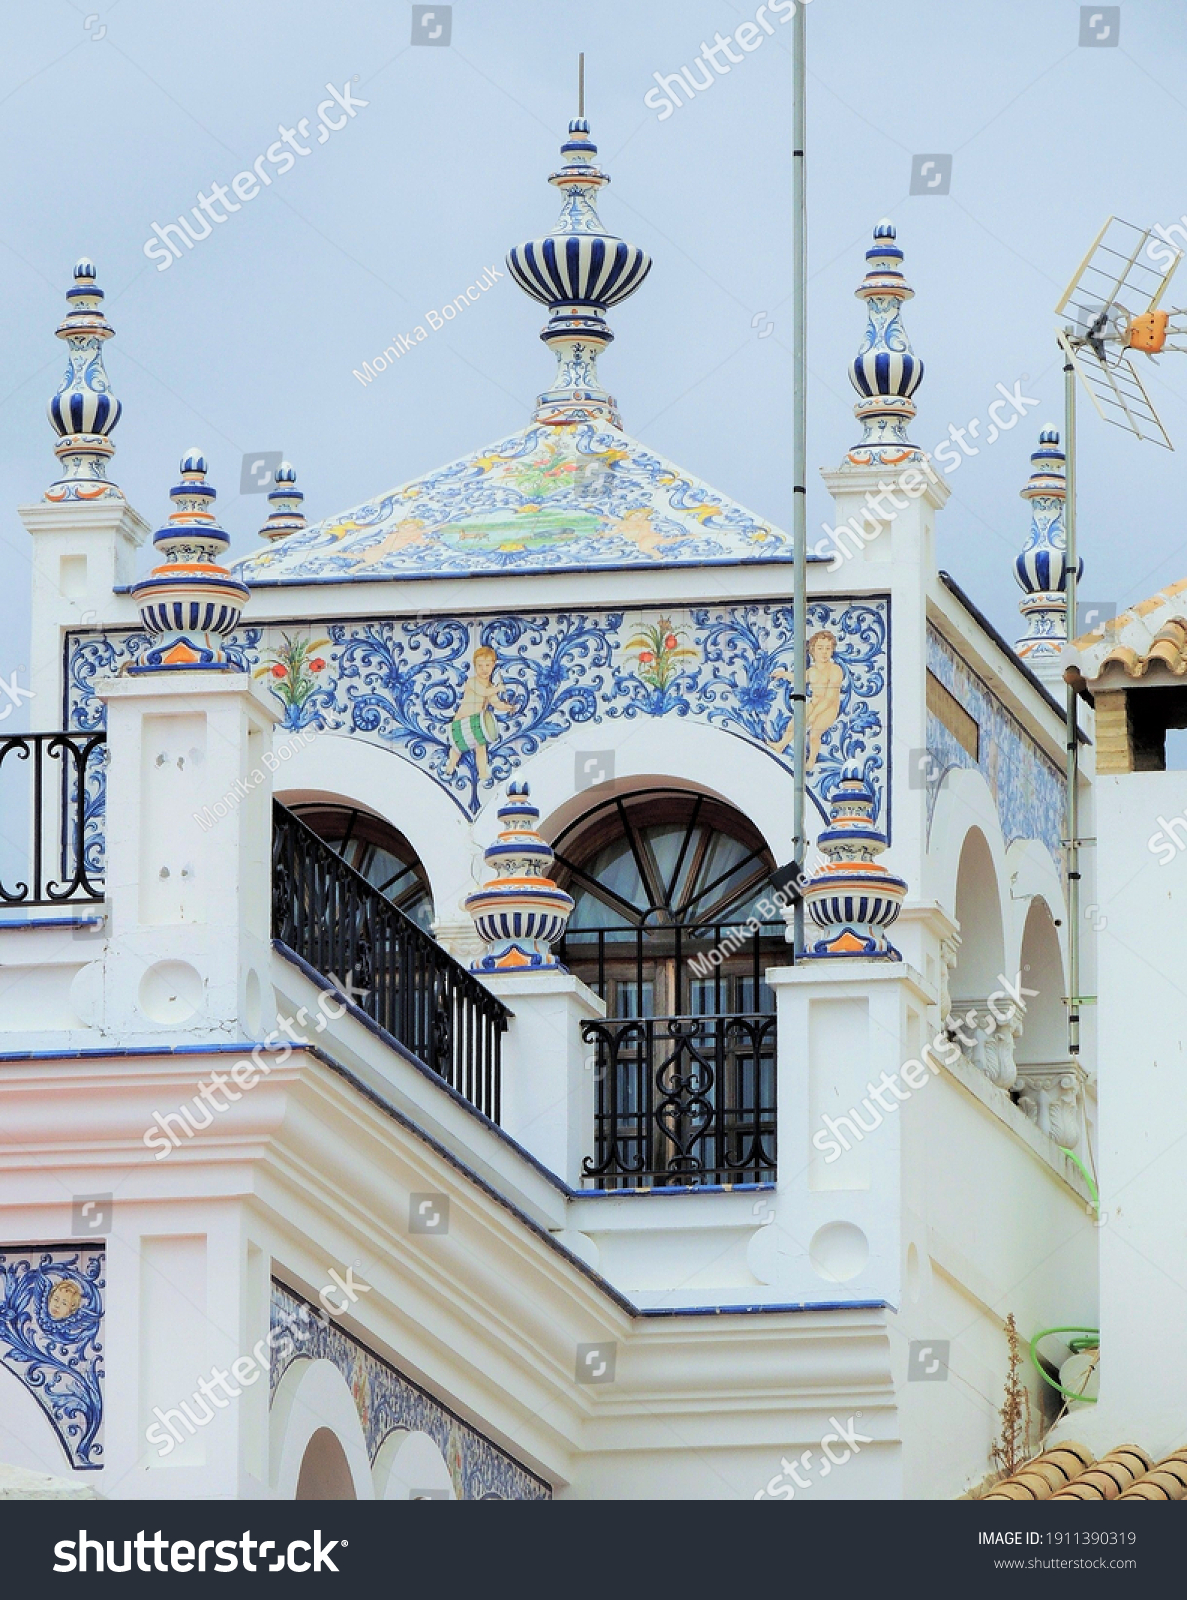 stock-photo-el-rocio-spain-june-a-house-